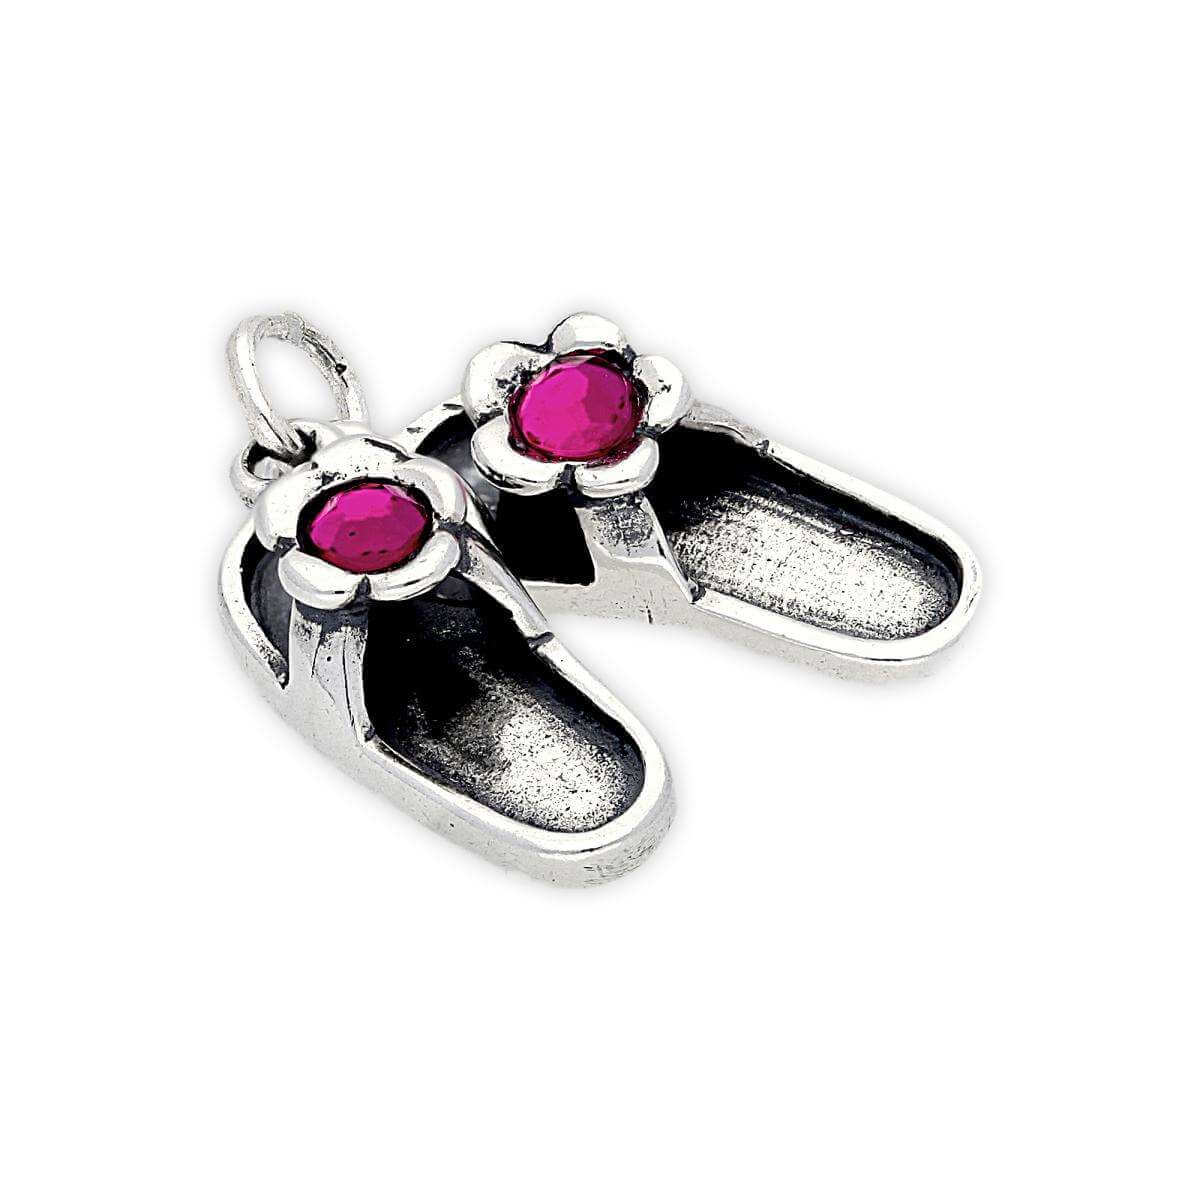 Sterling Silver Pair of Flip Flops Charm